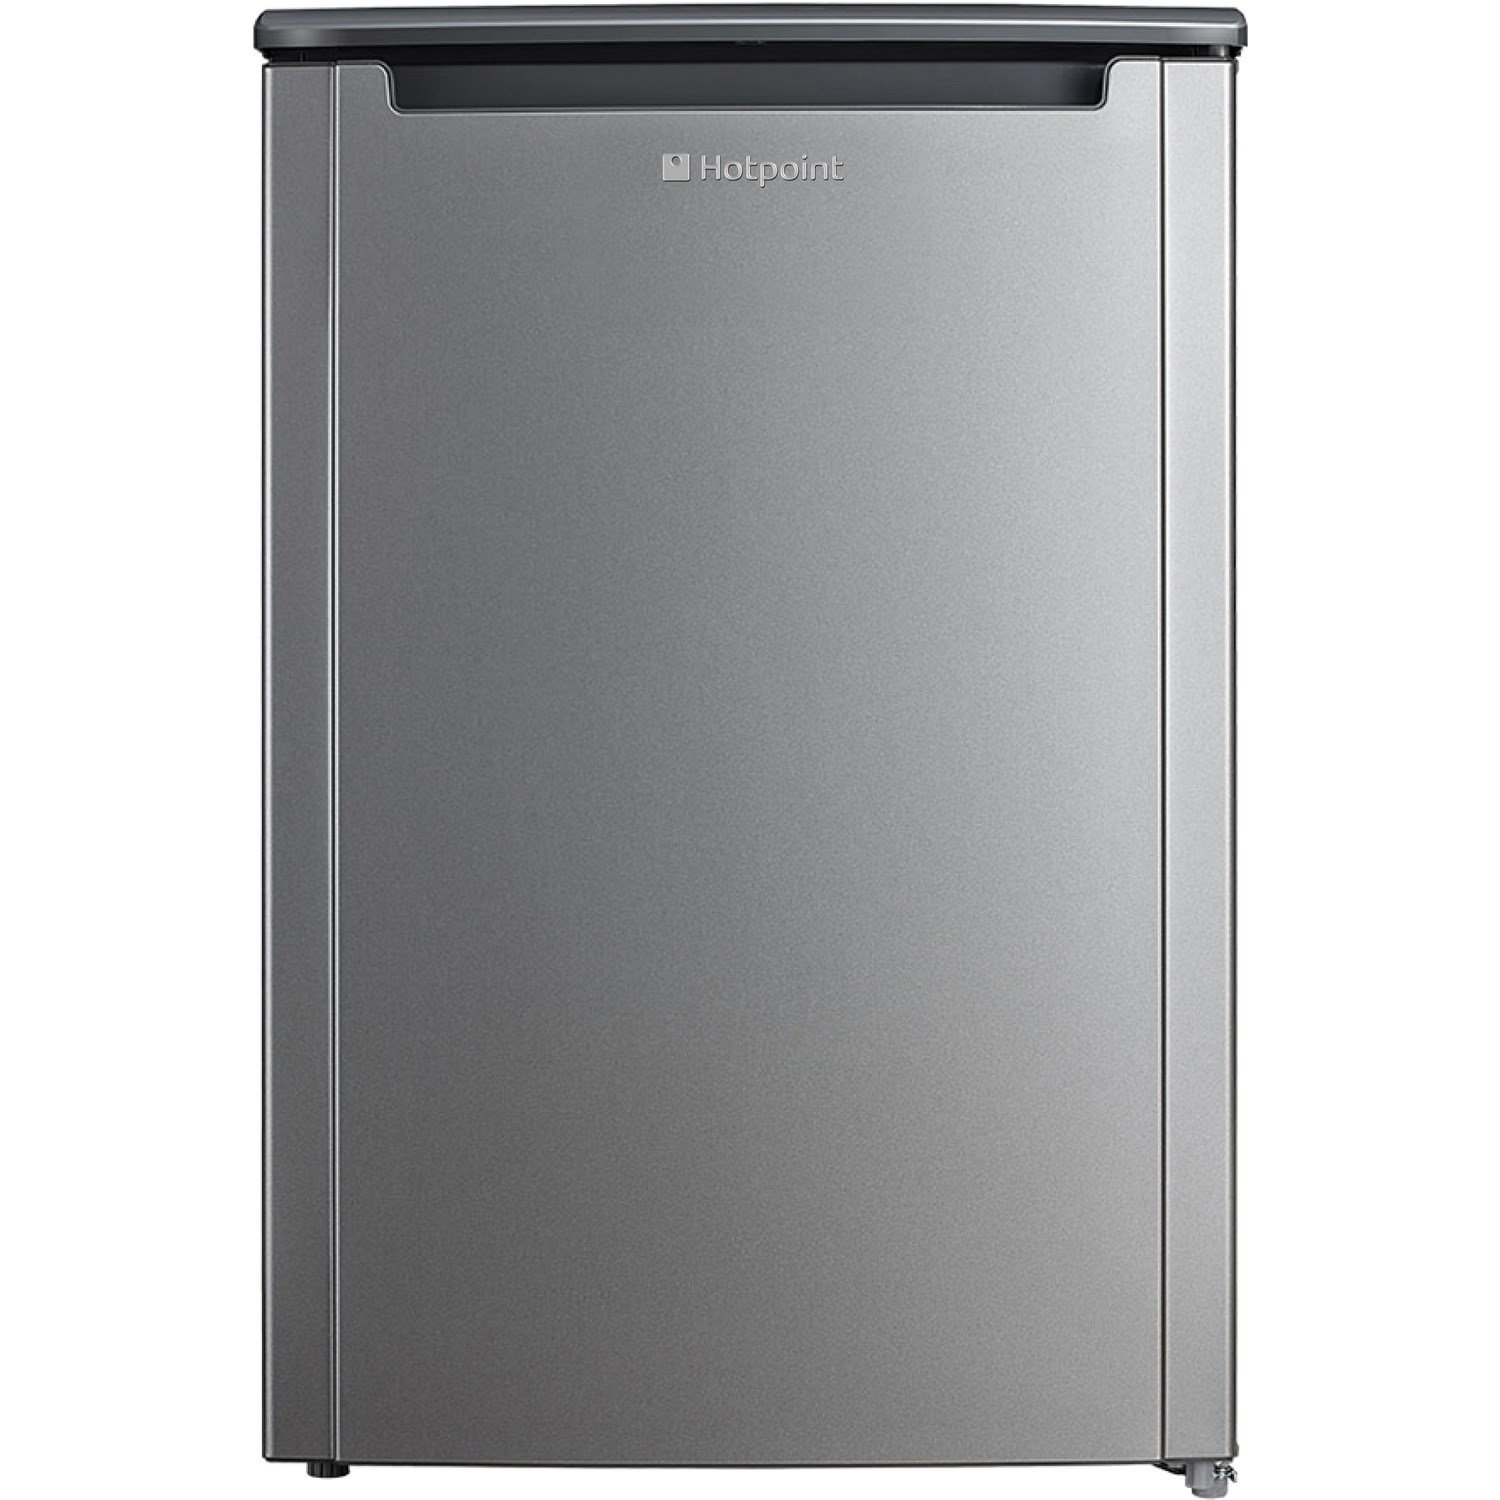 Hotpoint CTZ55G 3-Drawer 84L Freestanding Under Counter Freezer - Graphite